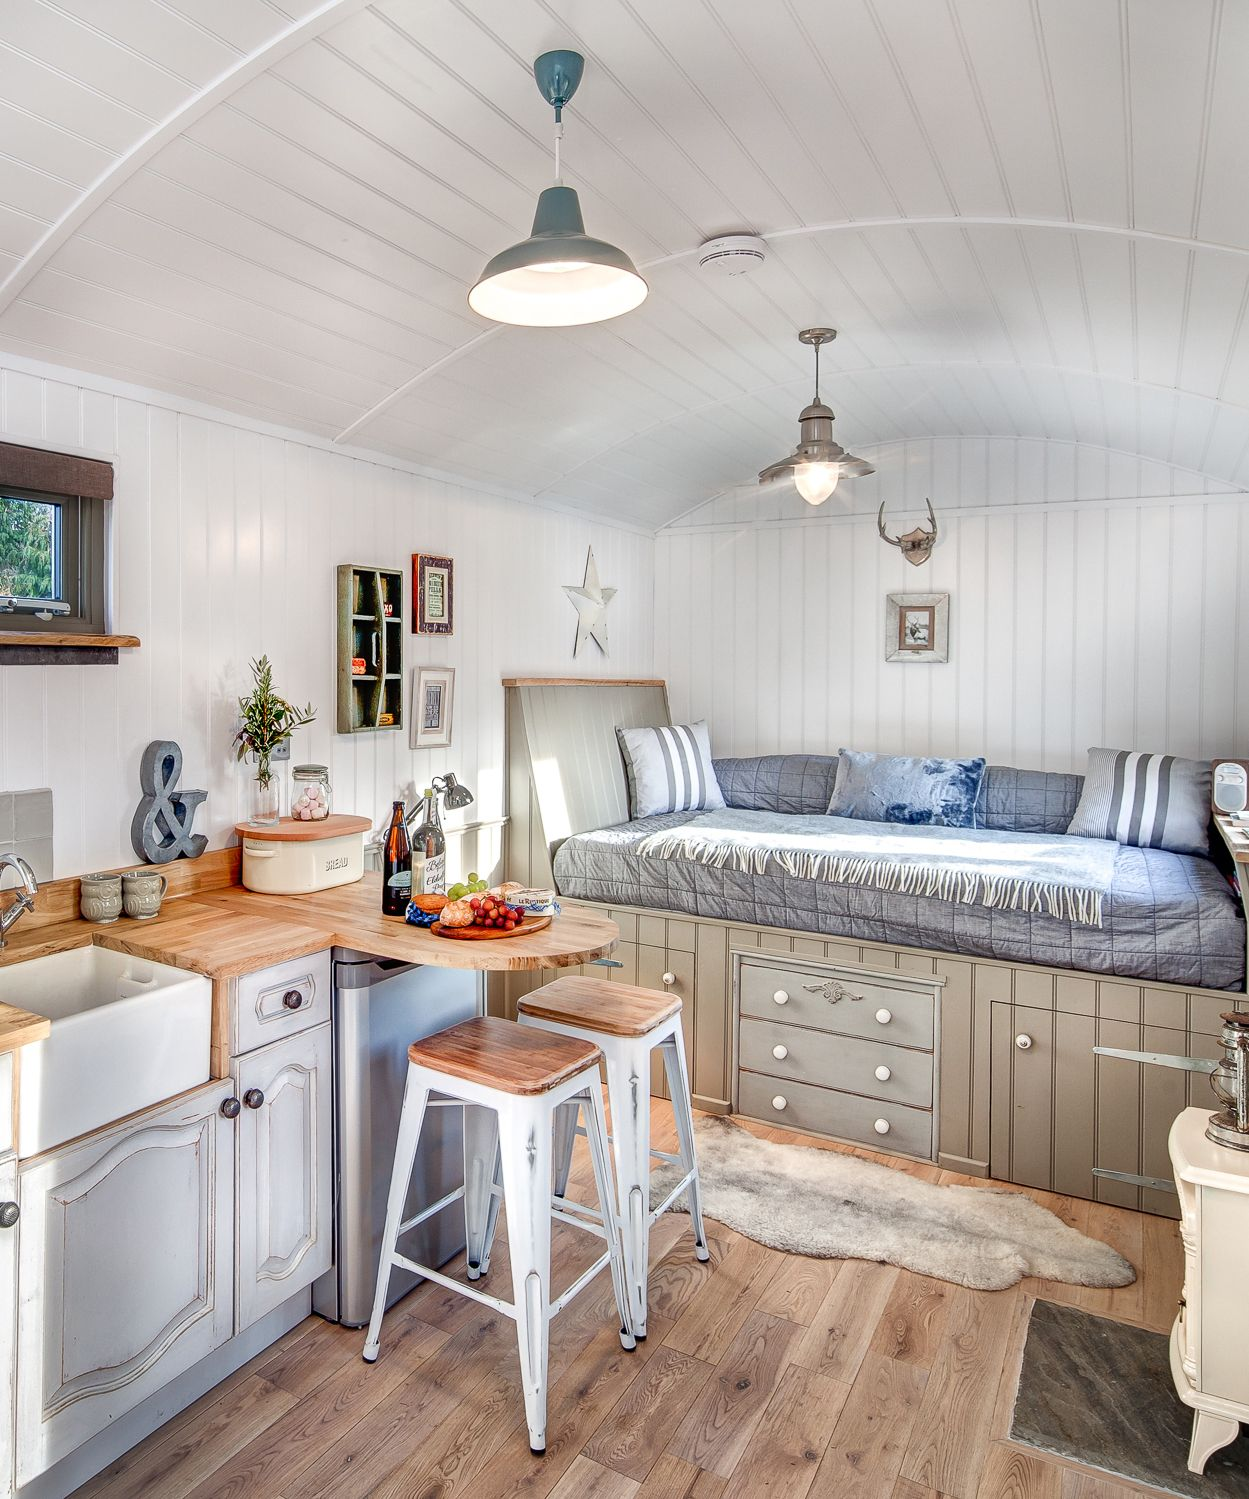 The Shepherds Hut Retreat   Natural light, Shabby and Ranges